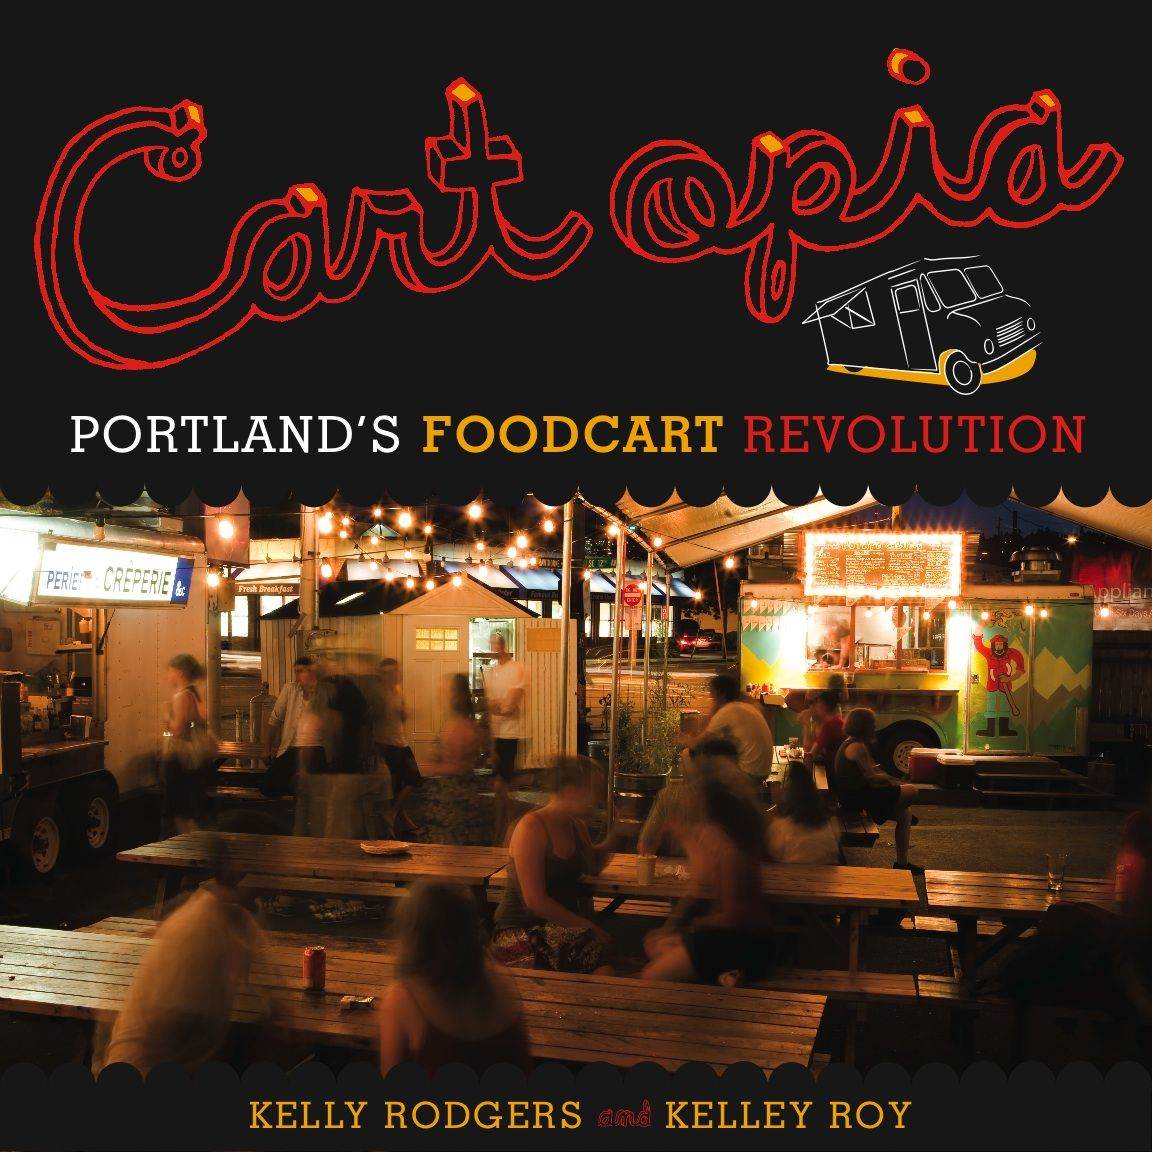 Cartopia Portland S Food Cart Revolution By Kelly Rodgers And Kelley Roy Powell S Books Staff Pick Portland Food Carts Portland Food Food Cart